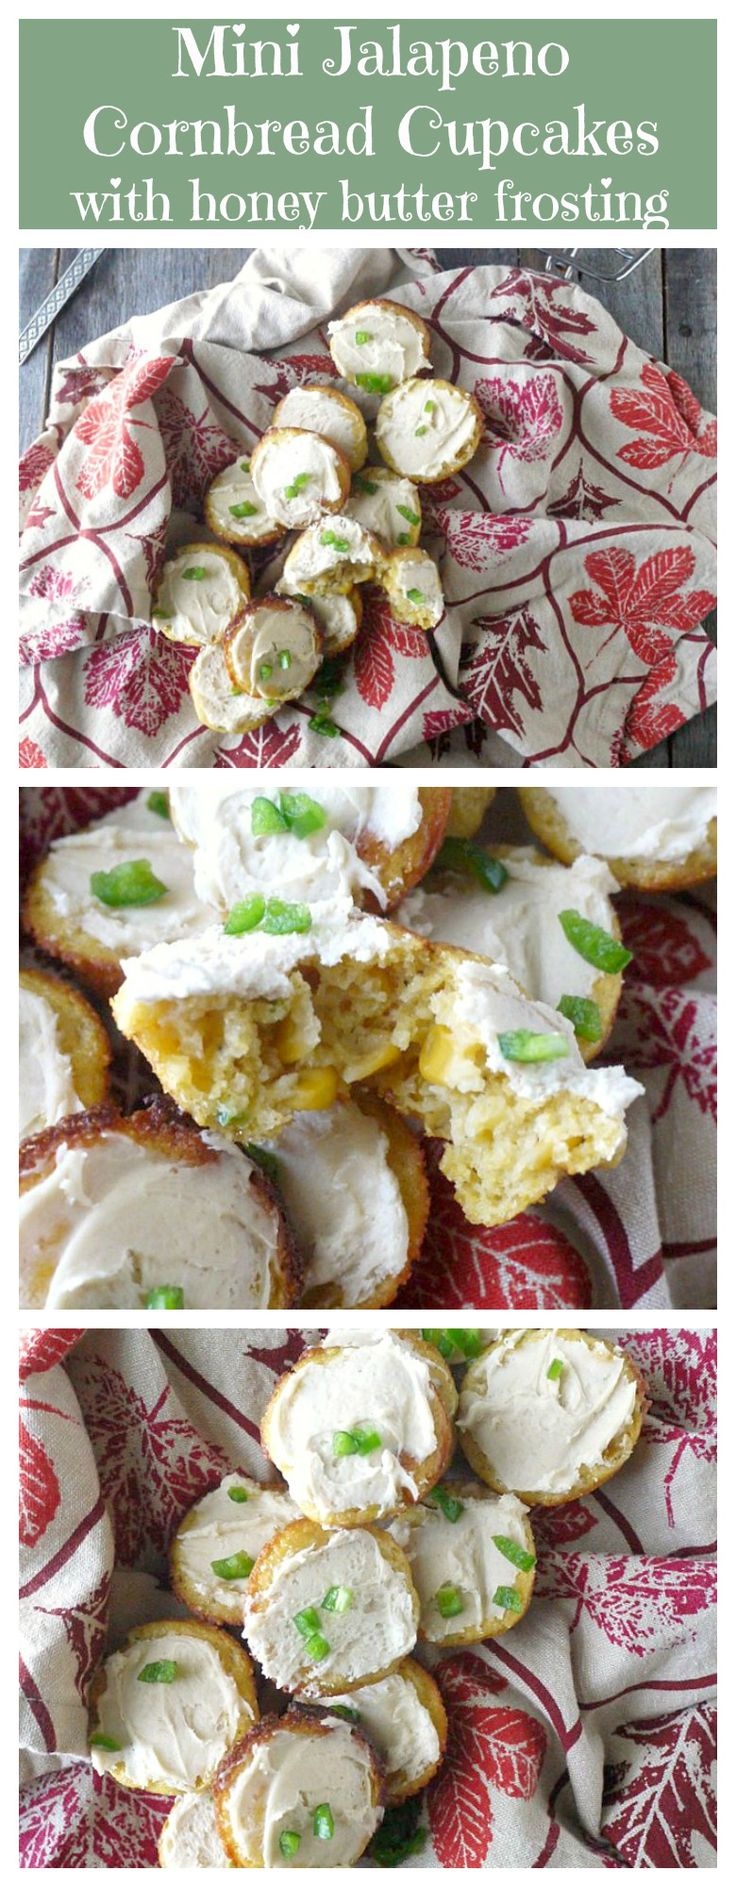 Mini Jalapeno Cornbread Cupcakes with Honey Butter Frosting - an appetizer, dessert and side dish all in one!